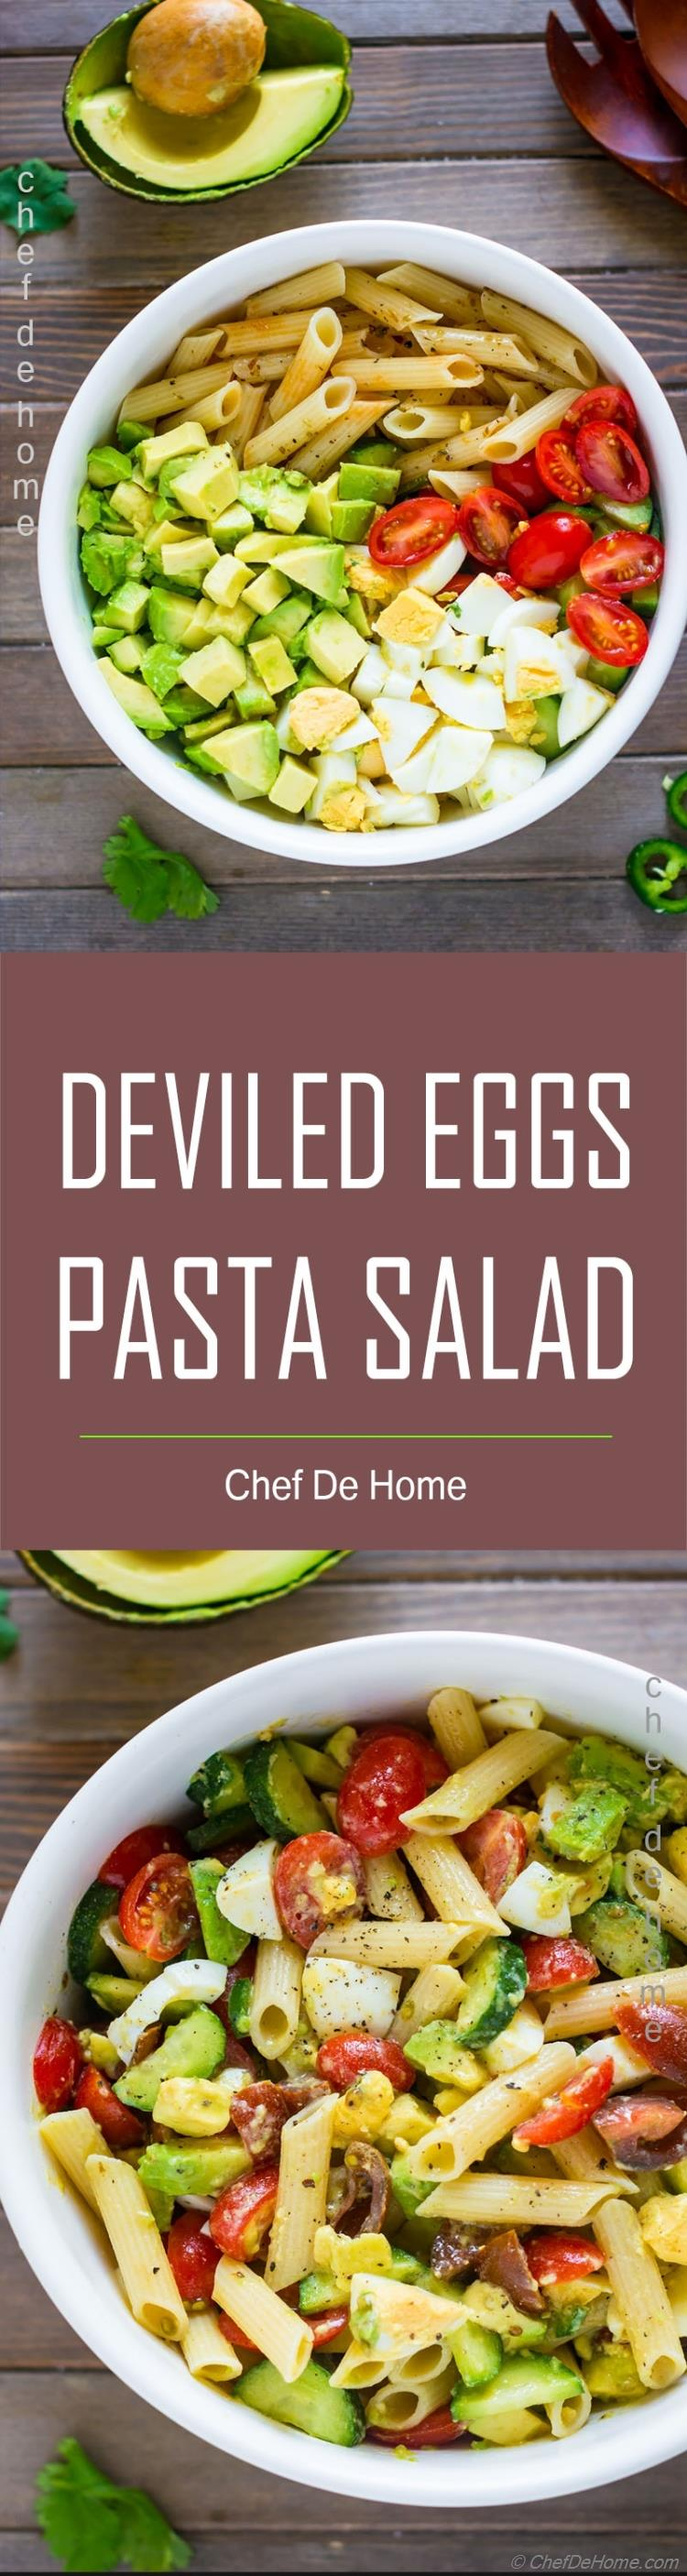 Pasta salad with avocado egg tomato and zesty dressing